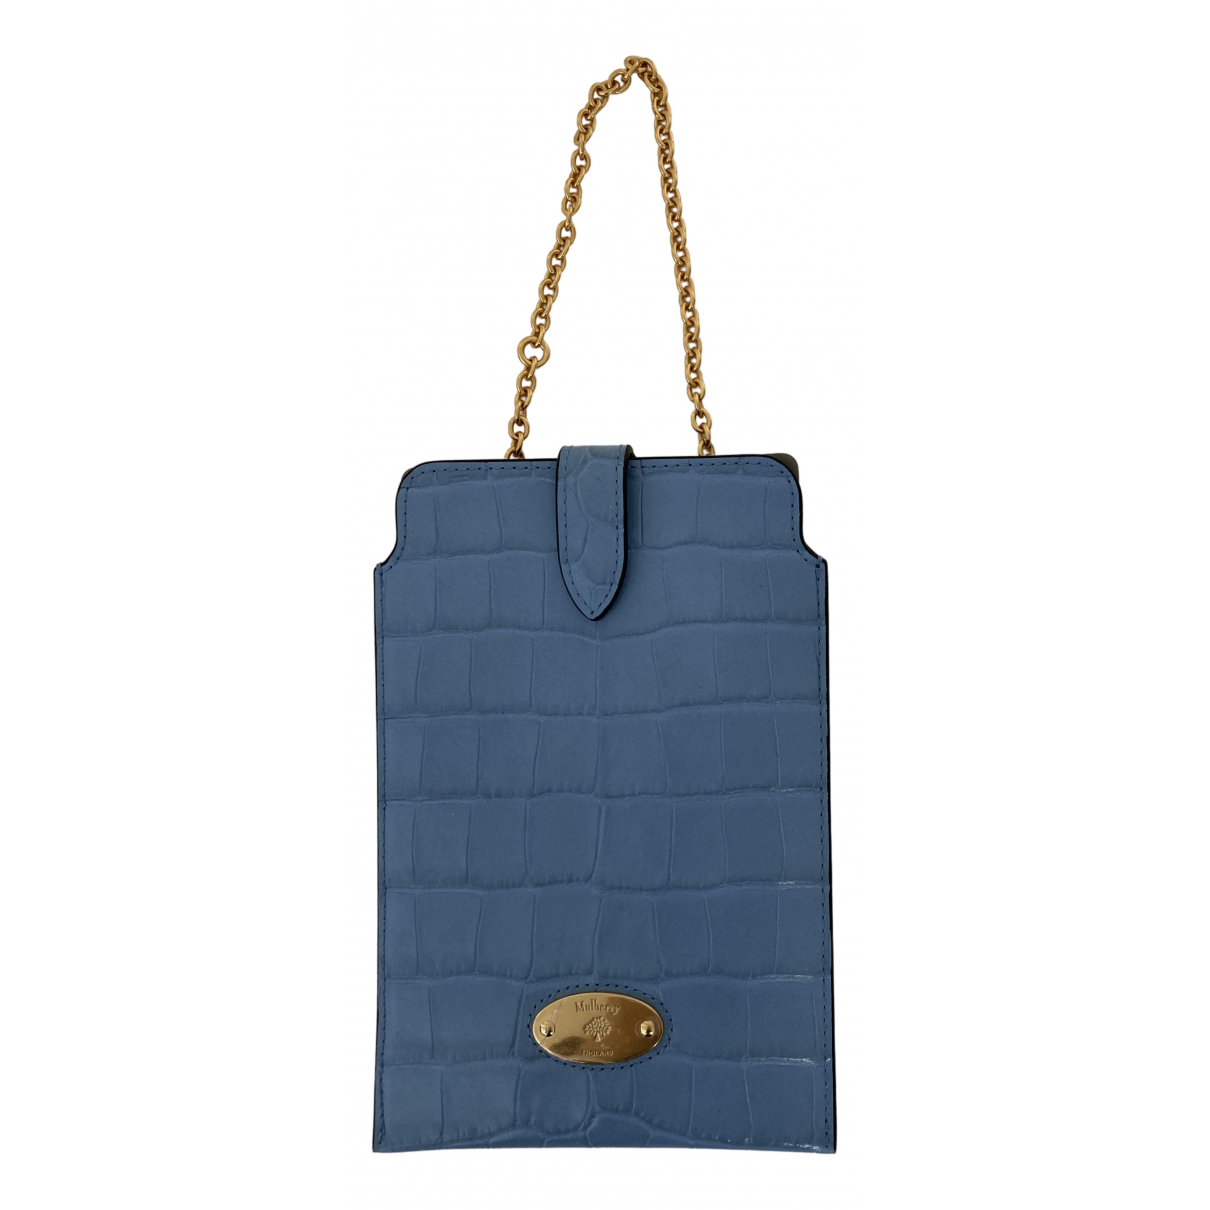 Mulberry N Blue Leather Purses, wallet & cases for Women N